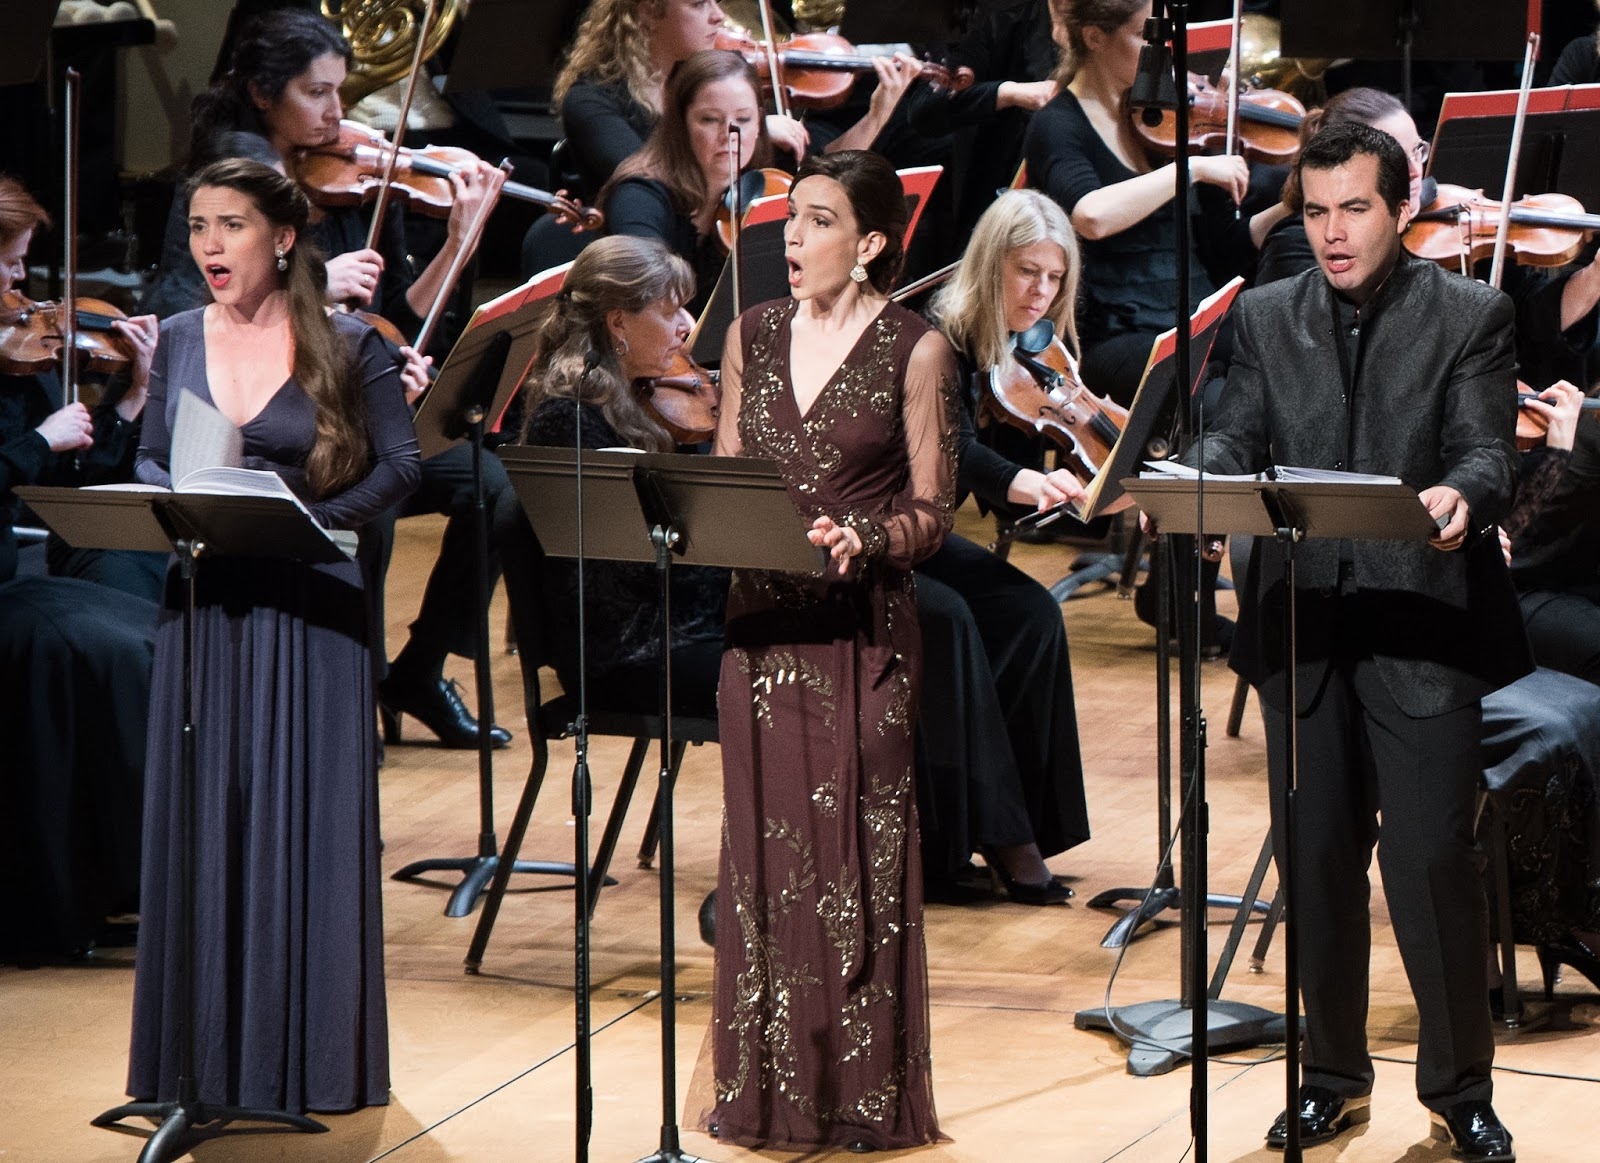 IN PERFORMANCE: Soprano JOÉLLE HARVEY as Inès, mezzo-soprano KATE LINDSEY as Léonor, and baritone JAVIER ARREY as Alphonse in Washington Concert Opera's performance of Gaetano Donizetti's LA FAVORITE in Lisner Auditorium, 4 March 2016 [Photo by Don Lassell, © by Washington Concert Opera]